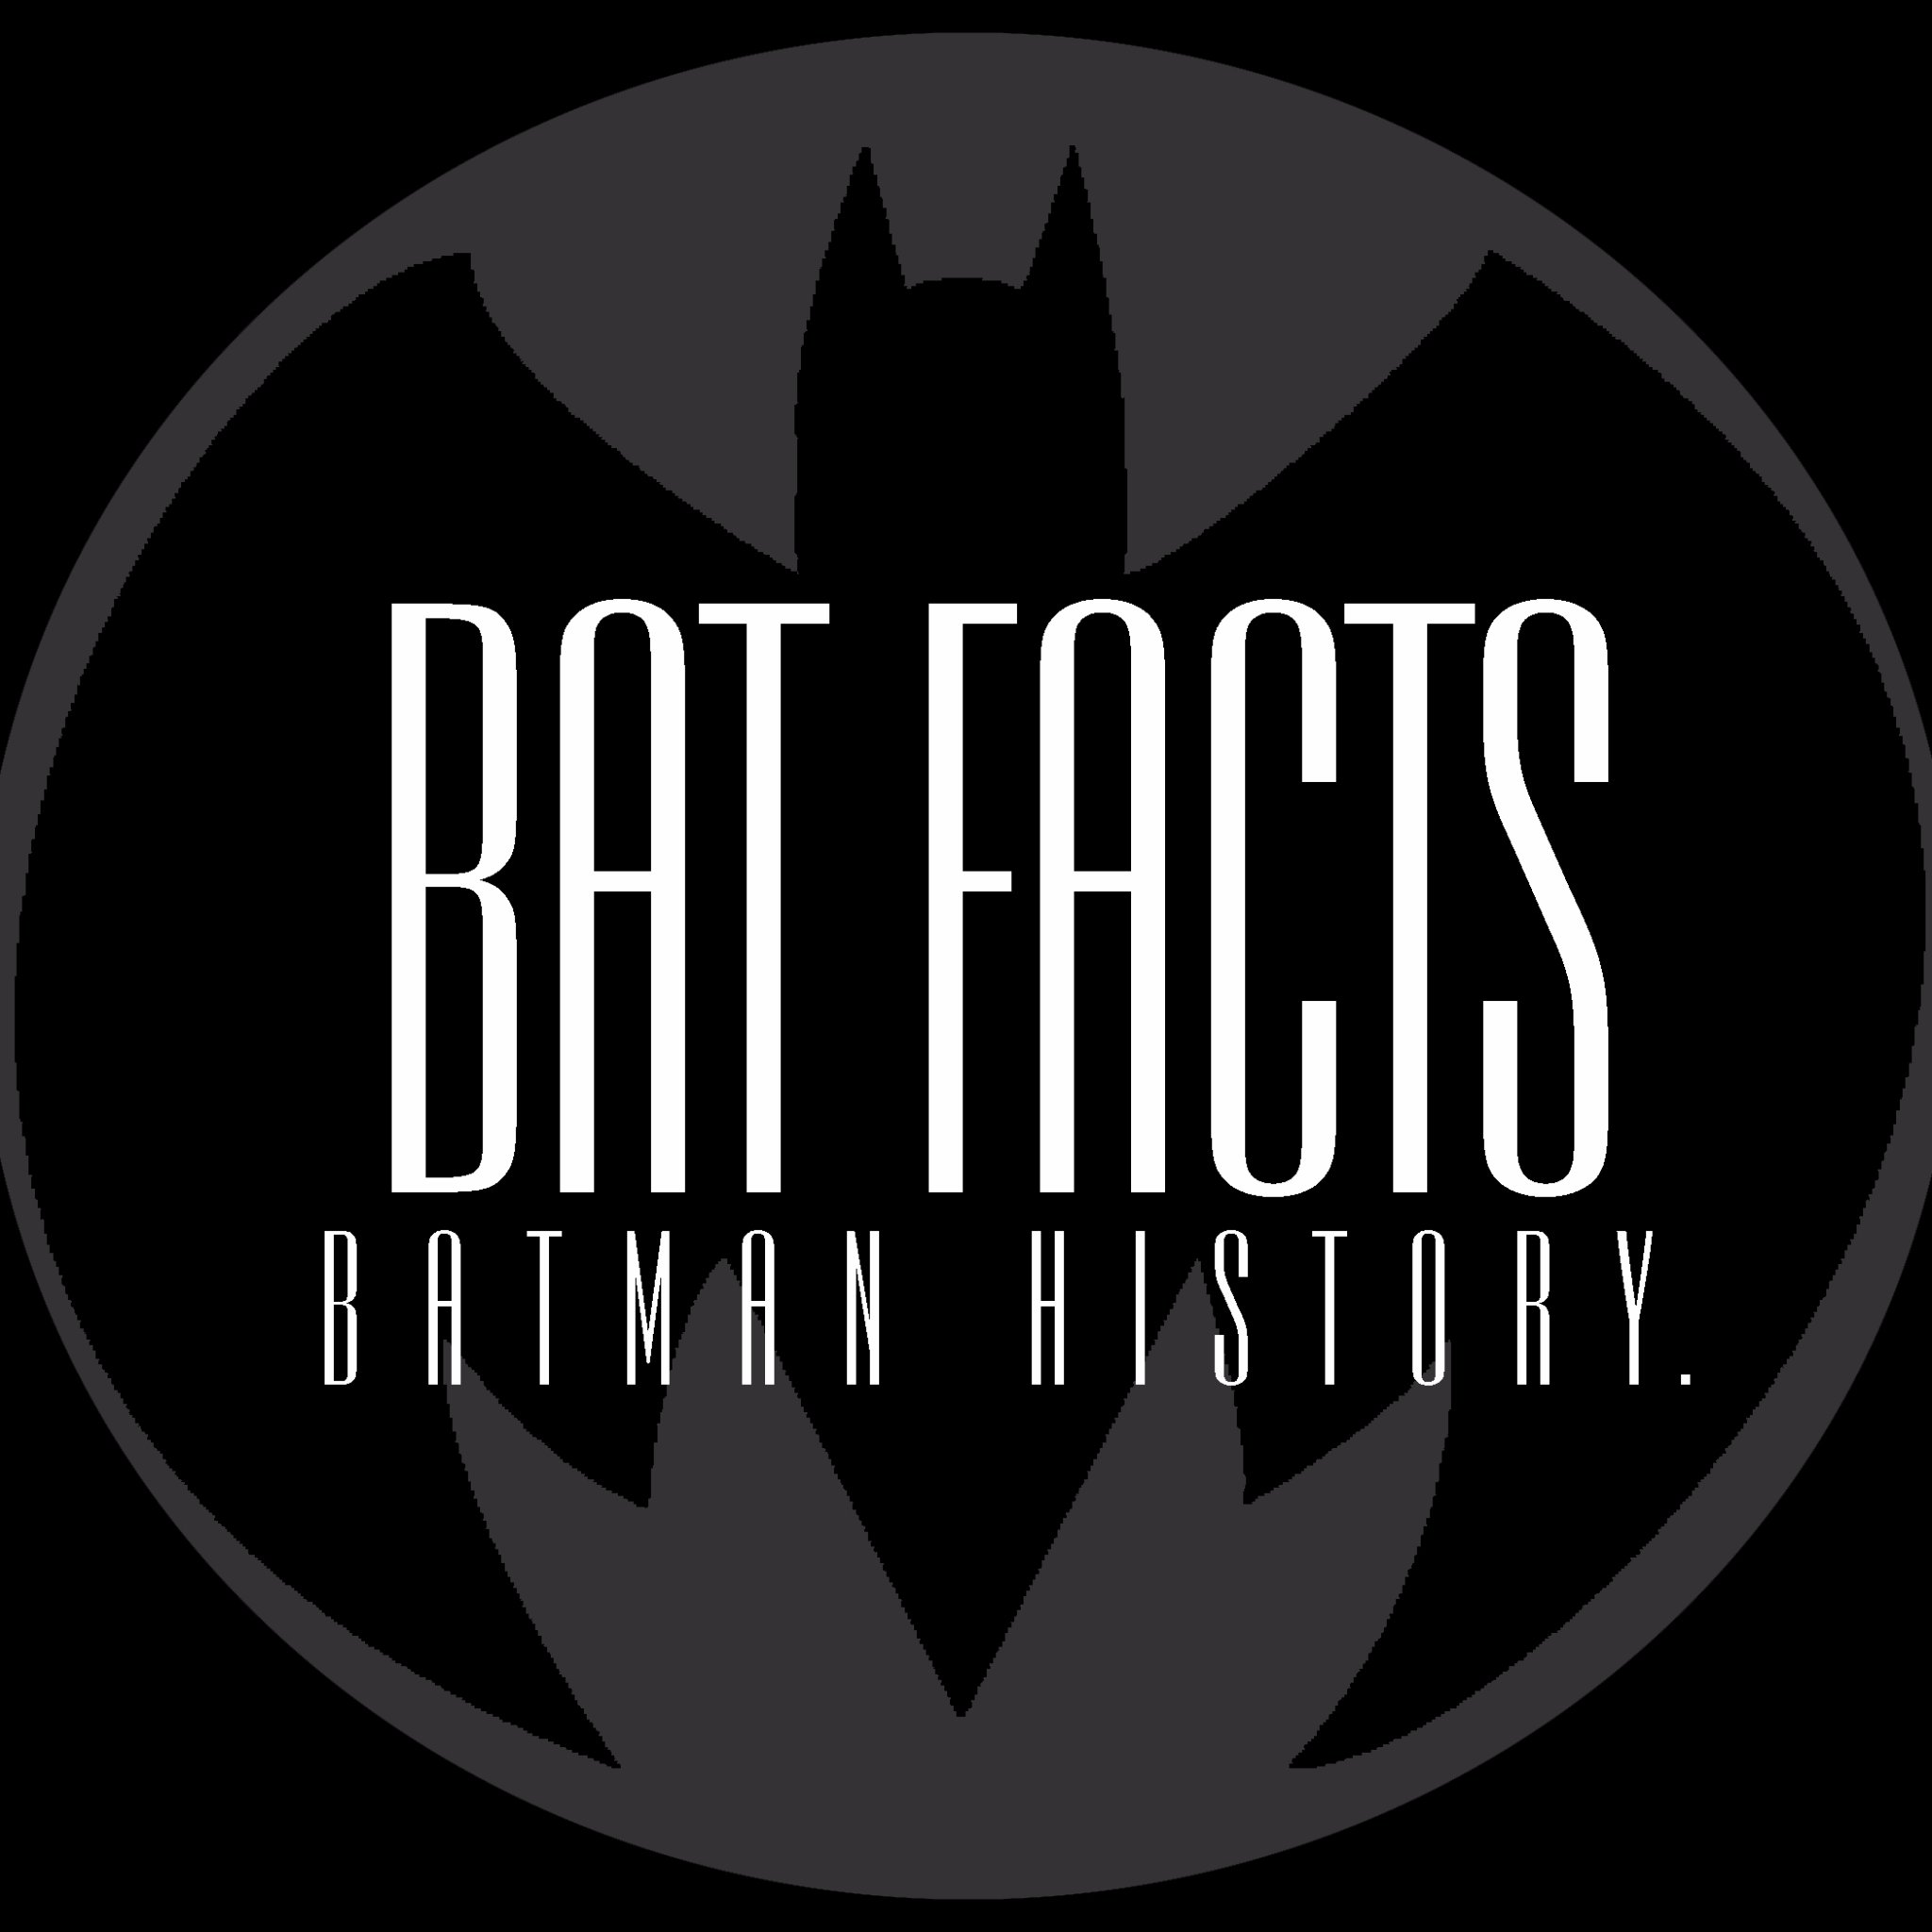 batfacts on topsy one